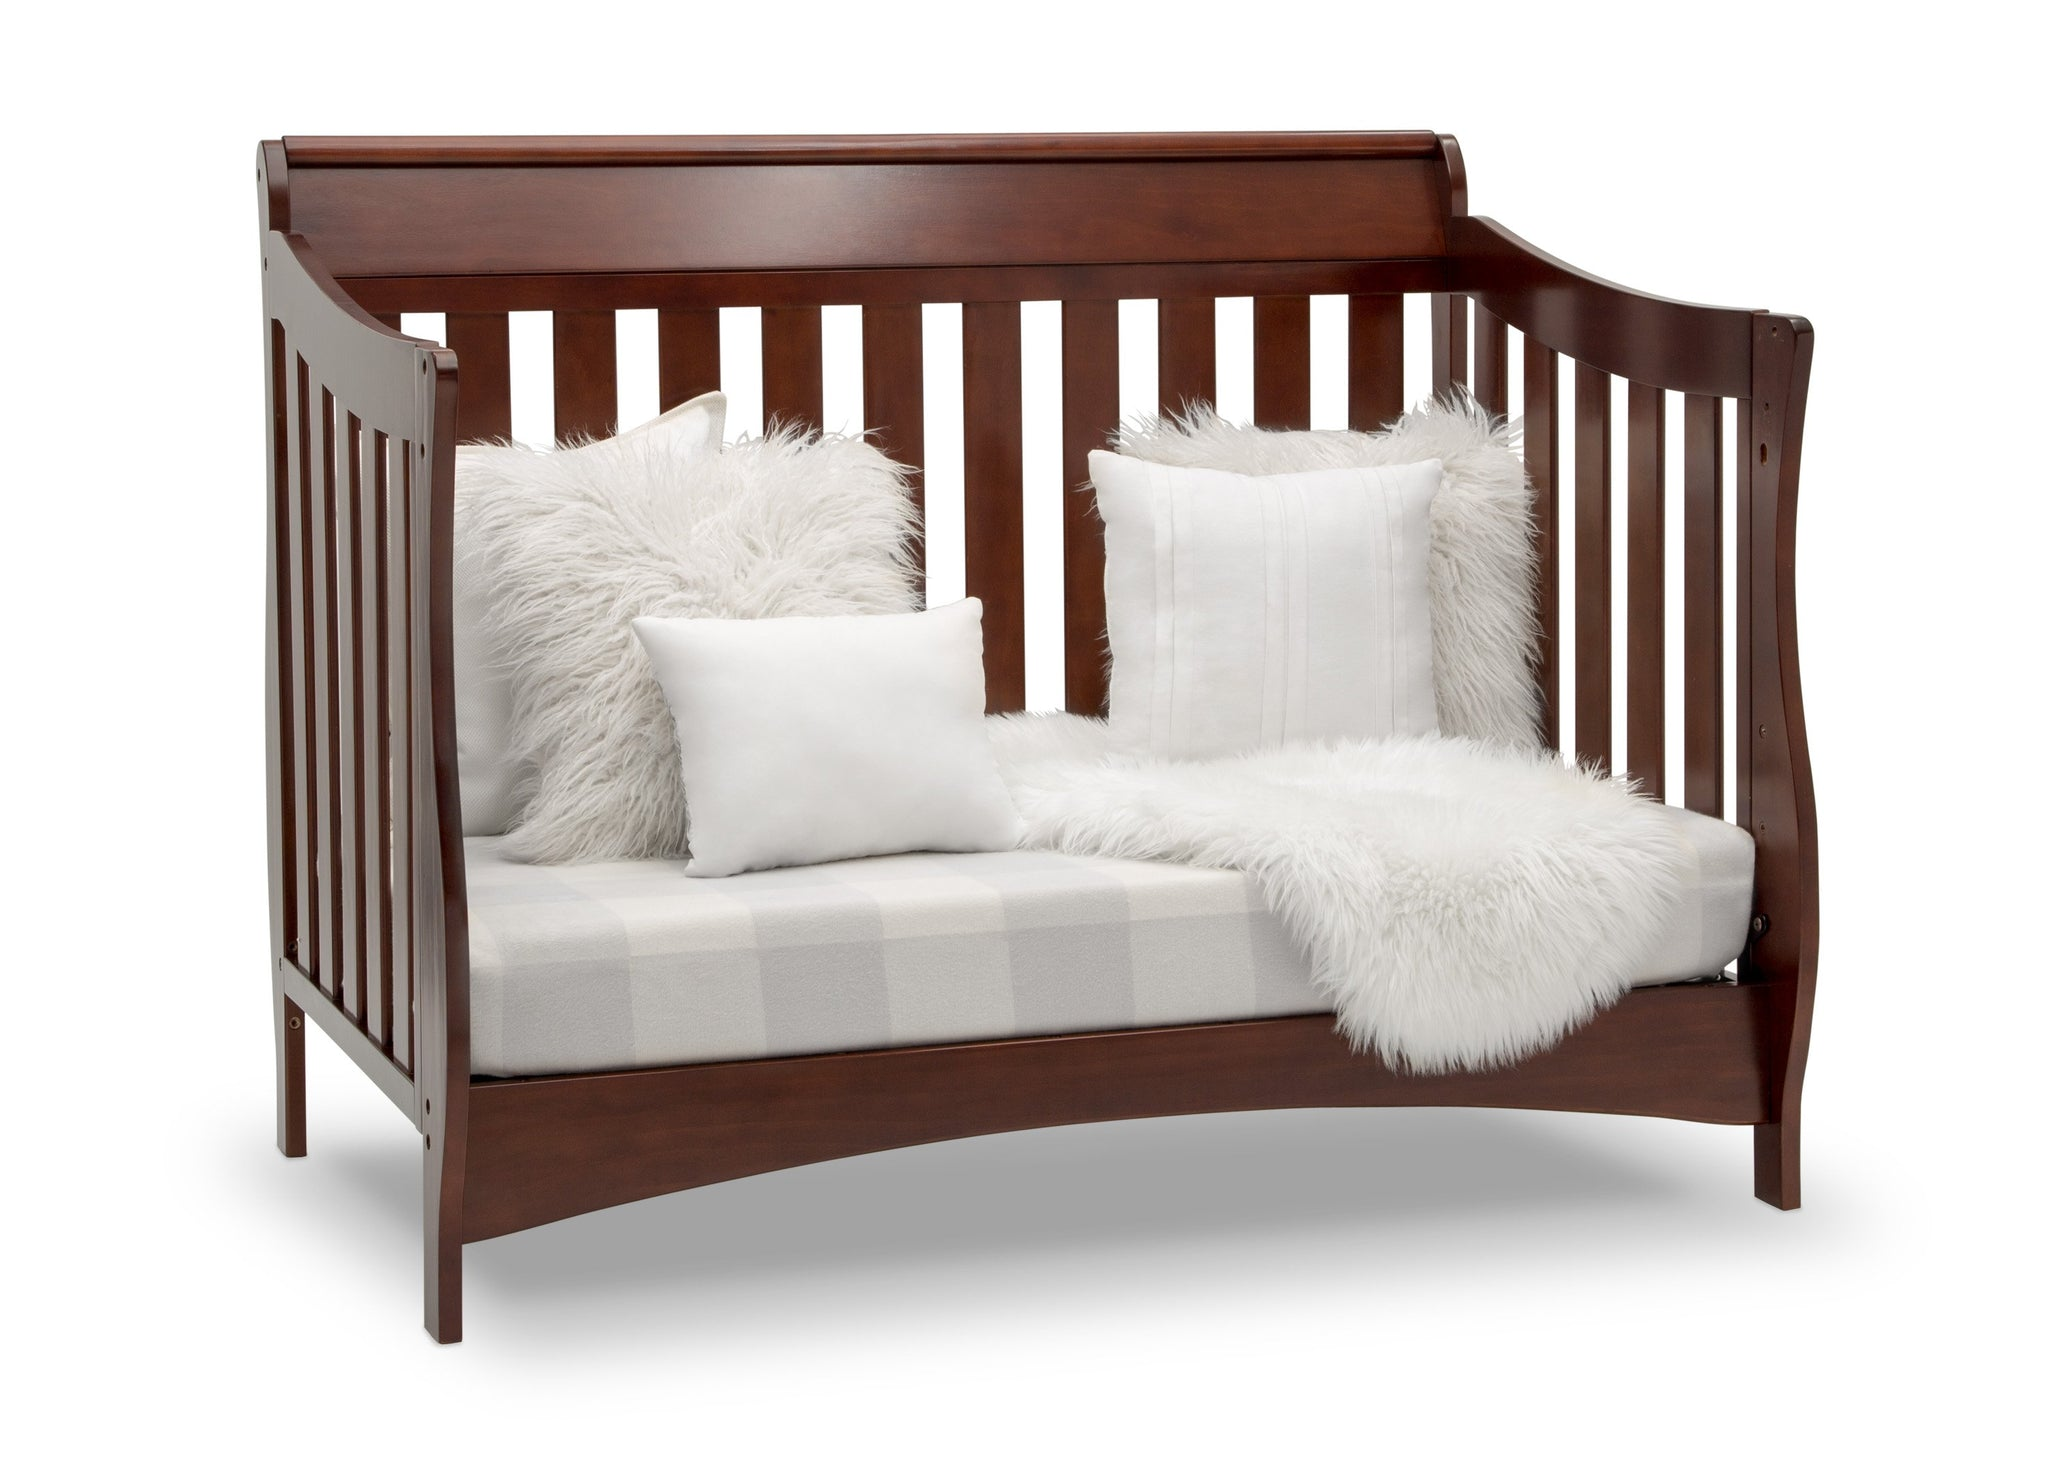 Delta Children Black Cherry Espresso (607) Bentley S Series Deluxe 6-in-1 Convertible Crib, Right Sofa Silo View